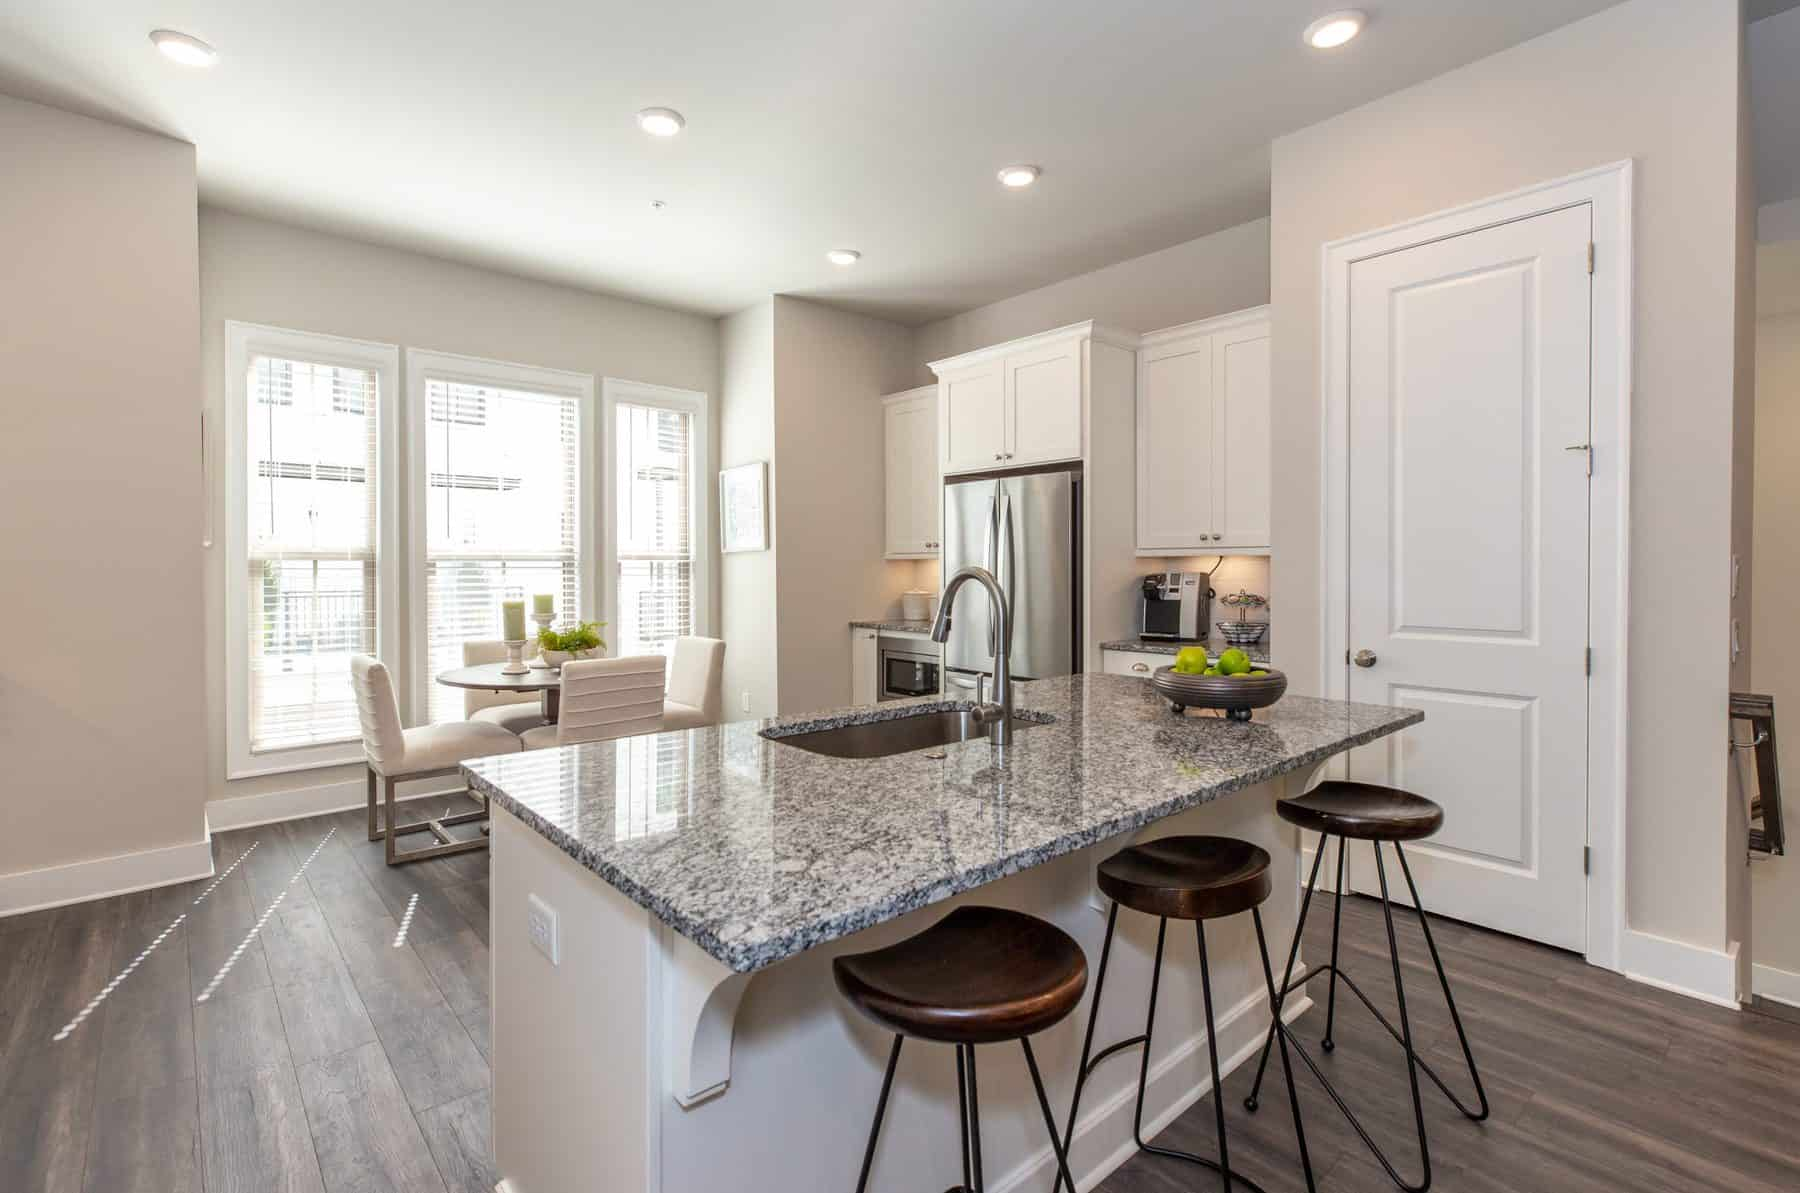 Save Up to $9K on Select New Woodstock Townhomes at Mason Main*